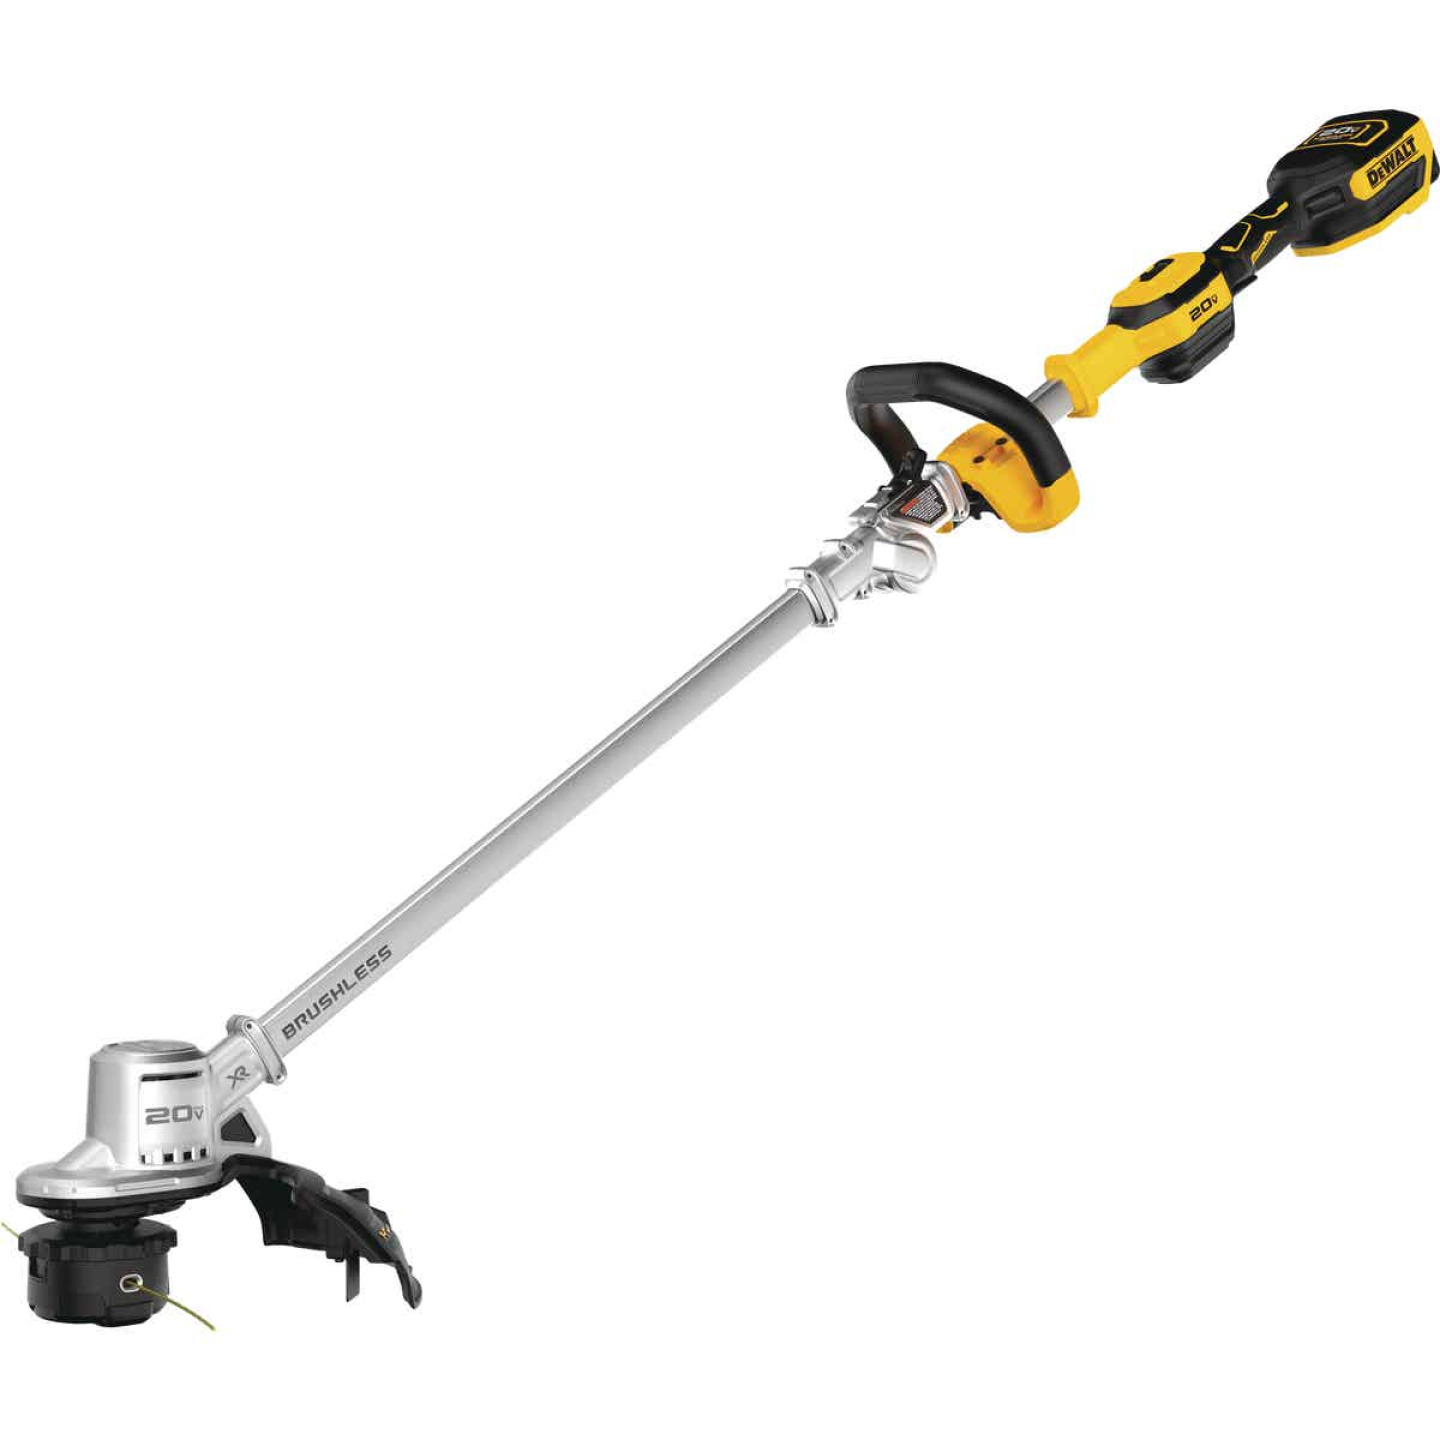 DeWalt 20V MAX 14 In. Folding String Trimmer Image 1